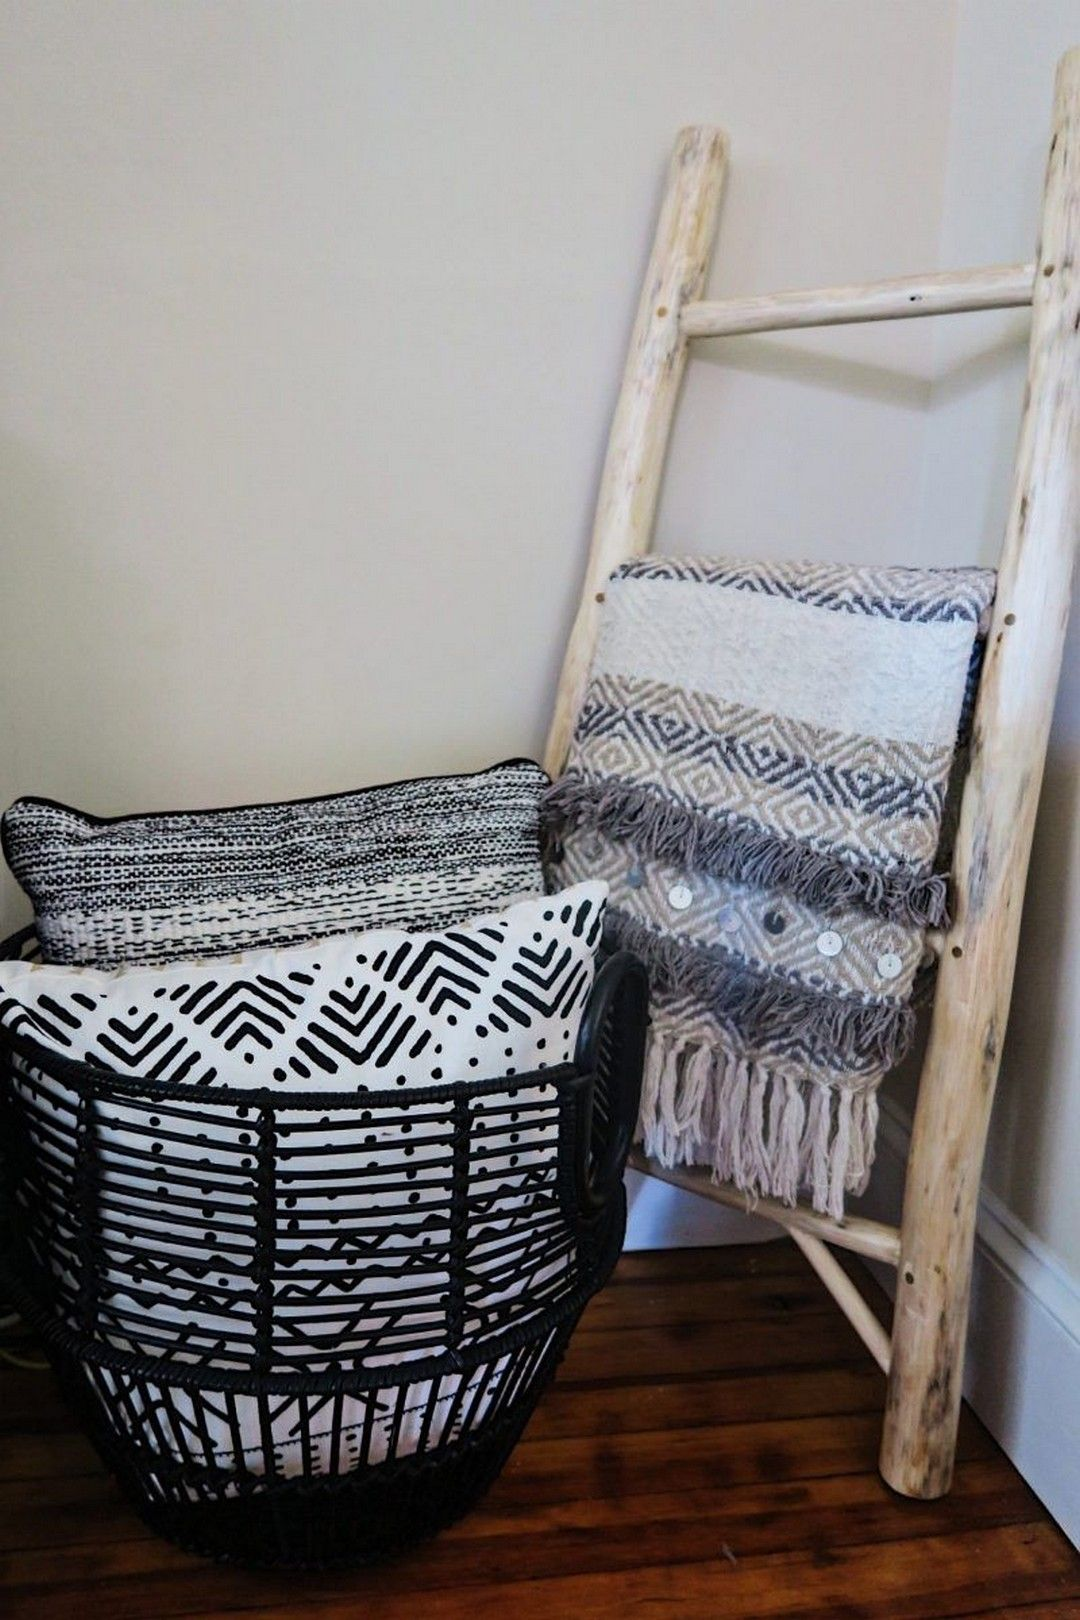 22 blanket rack to farmhouse vegetable stand with images